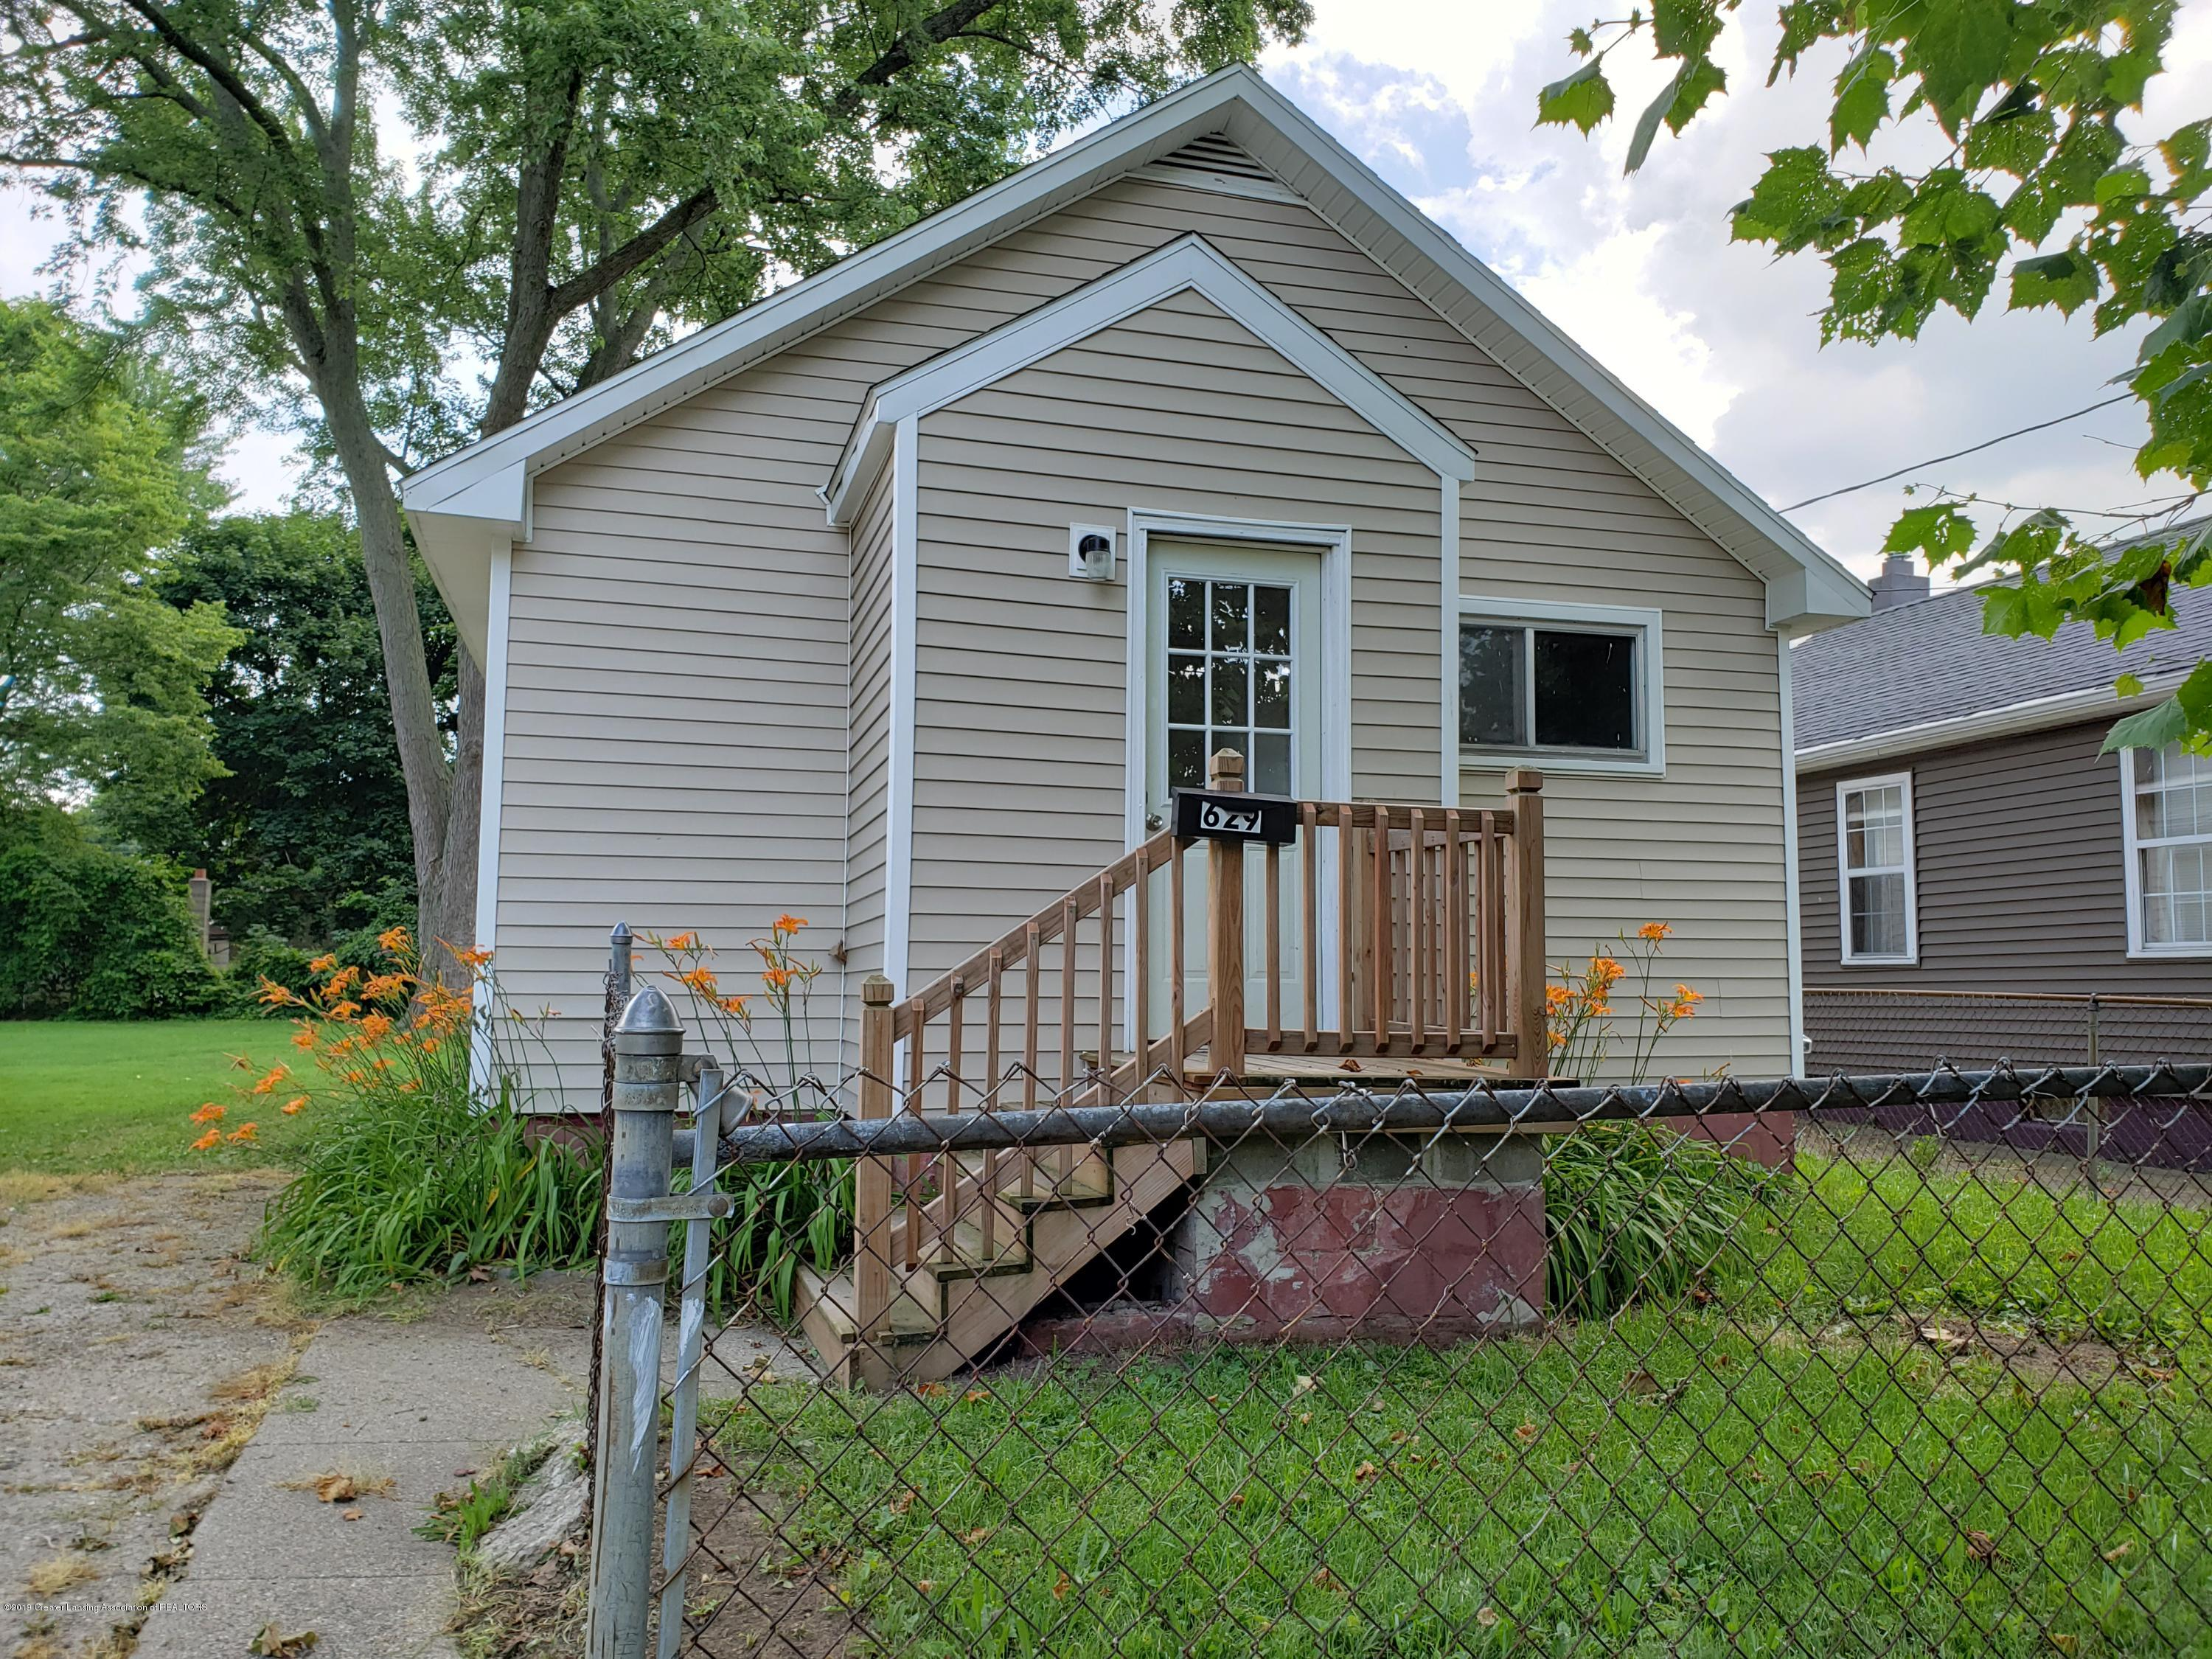 629 S Foster Ave - 20190715_143814 - 3